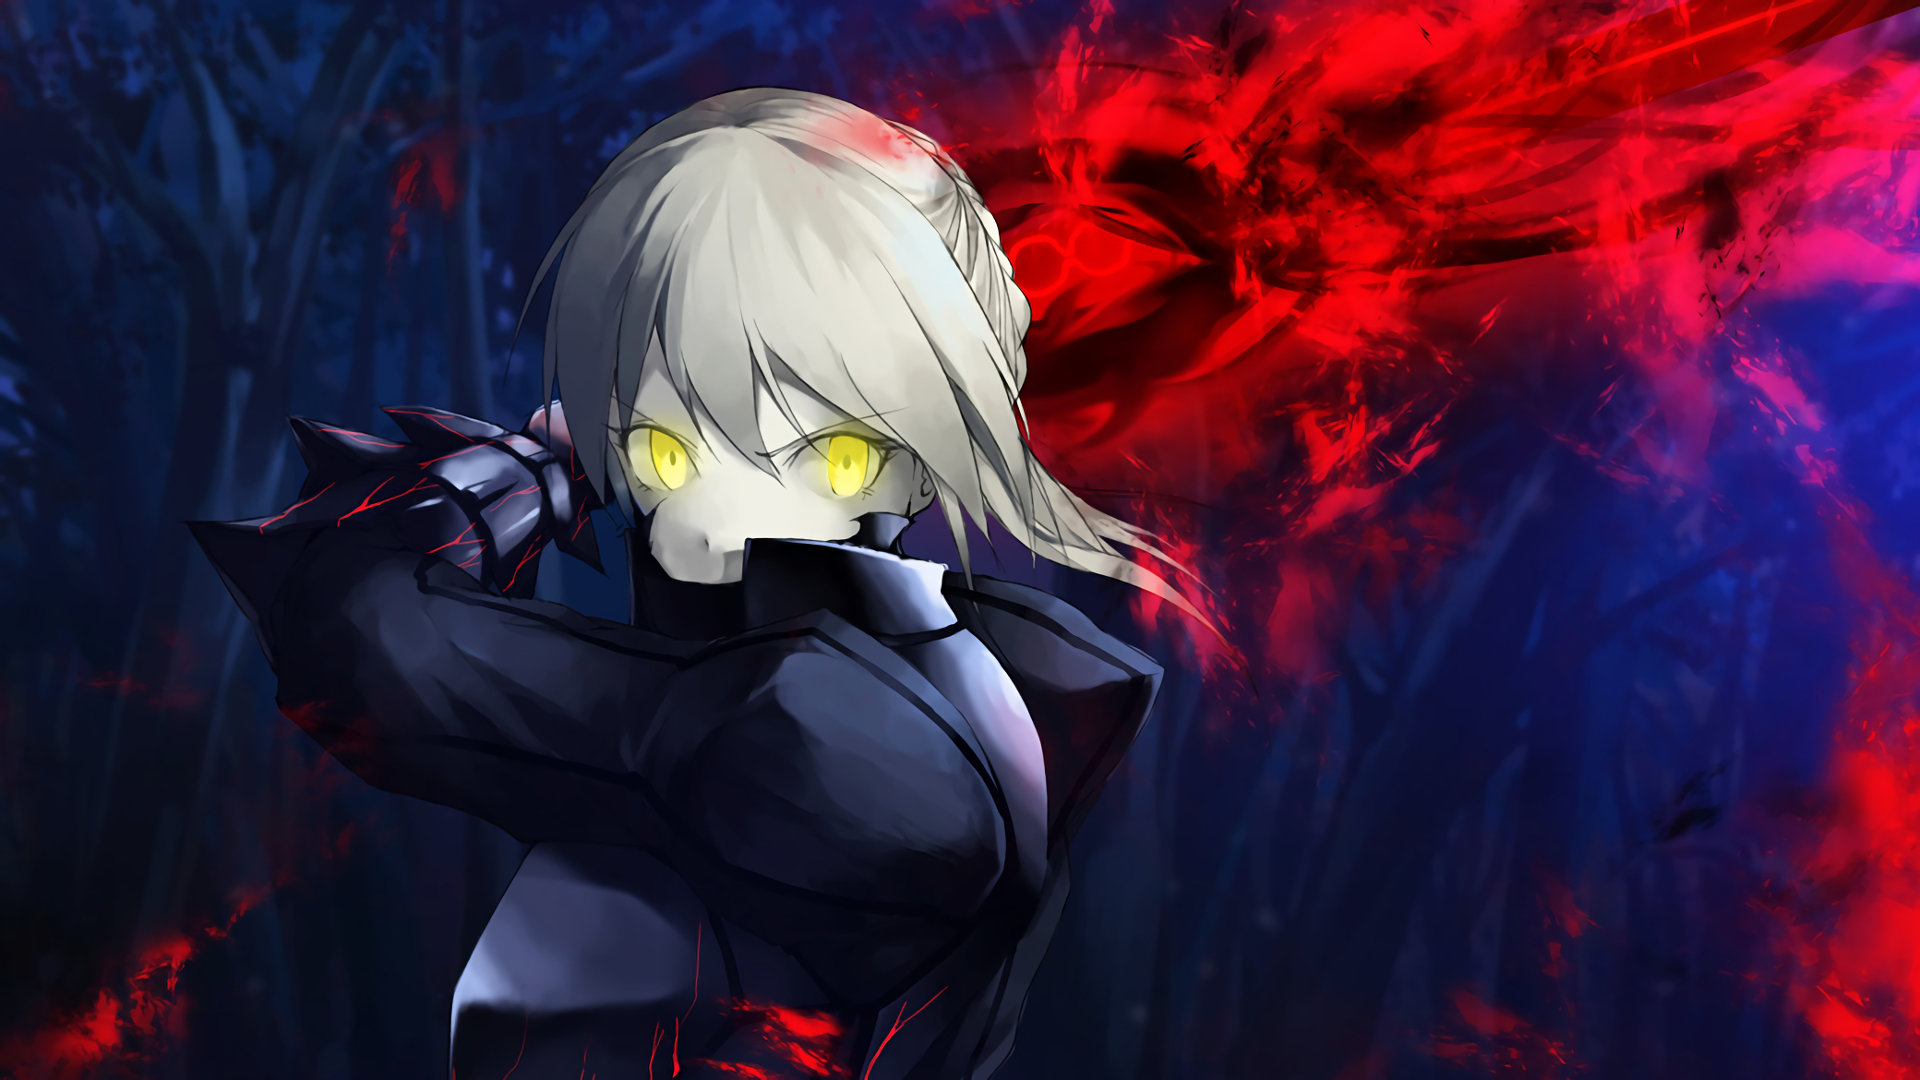 Download full hd 1920x1080 Saber Alter desktop wallpaper ID:468846 for free